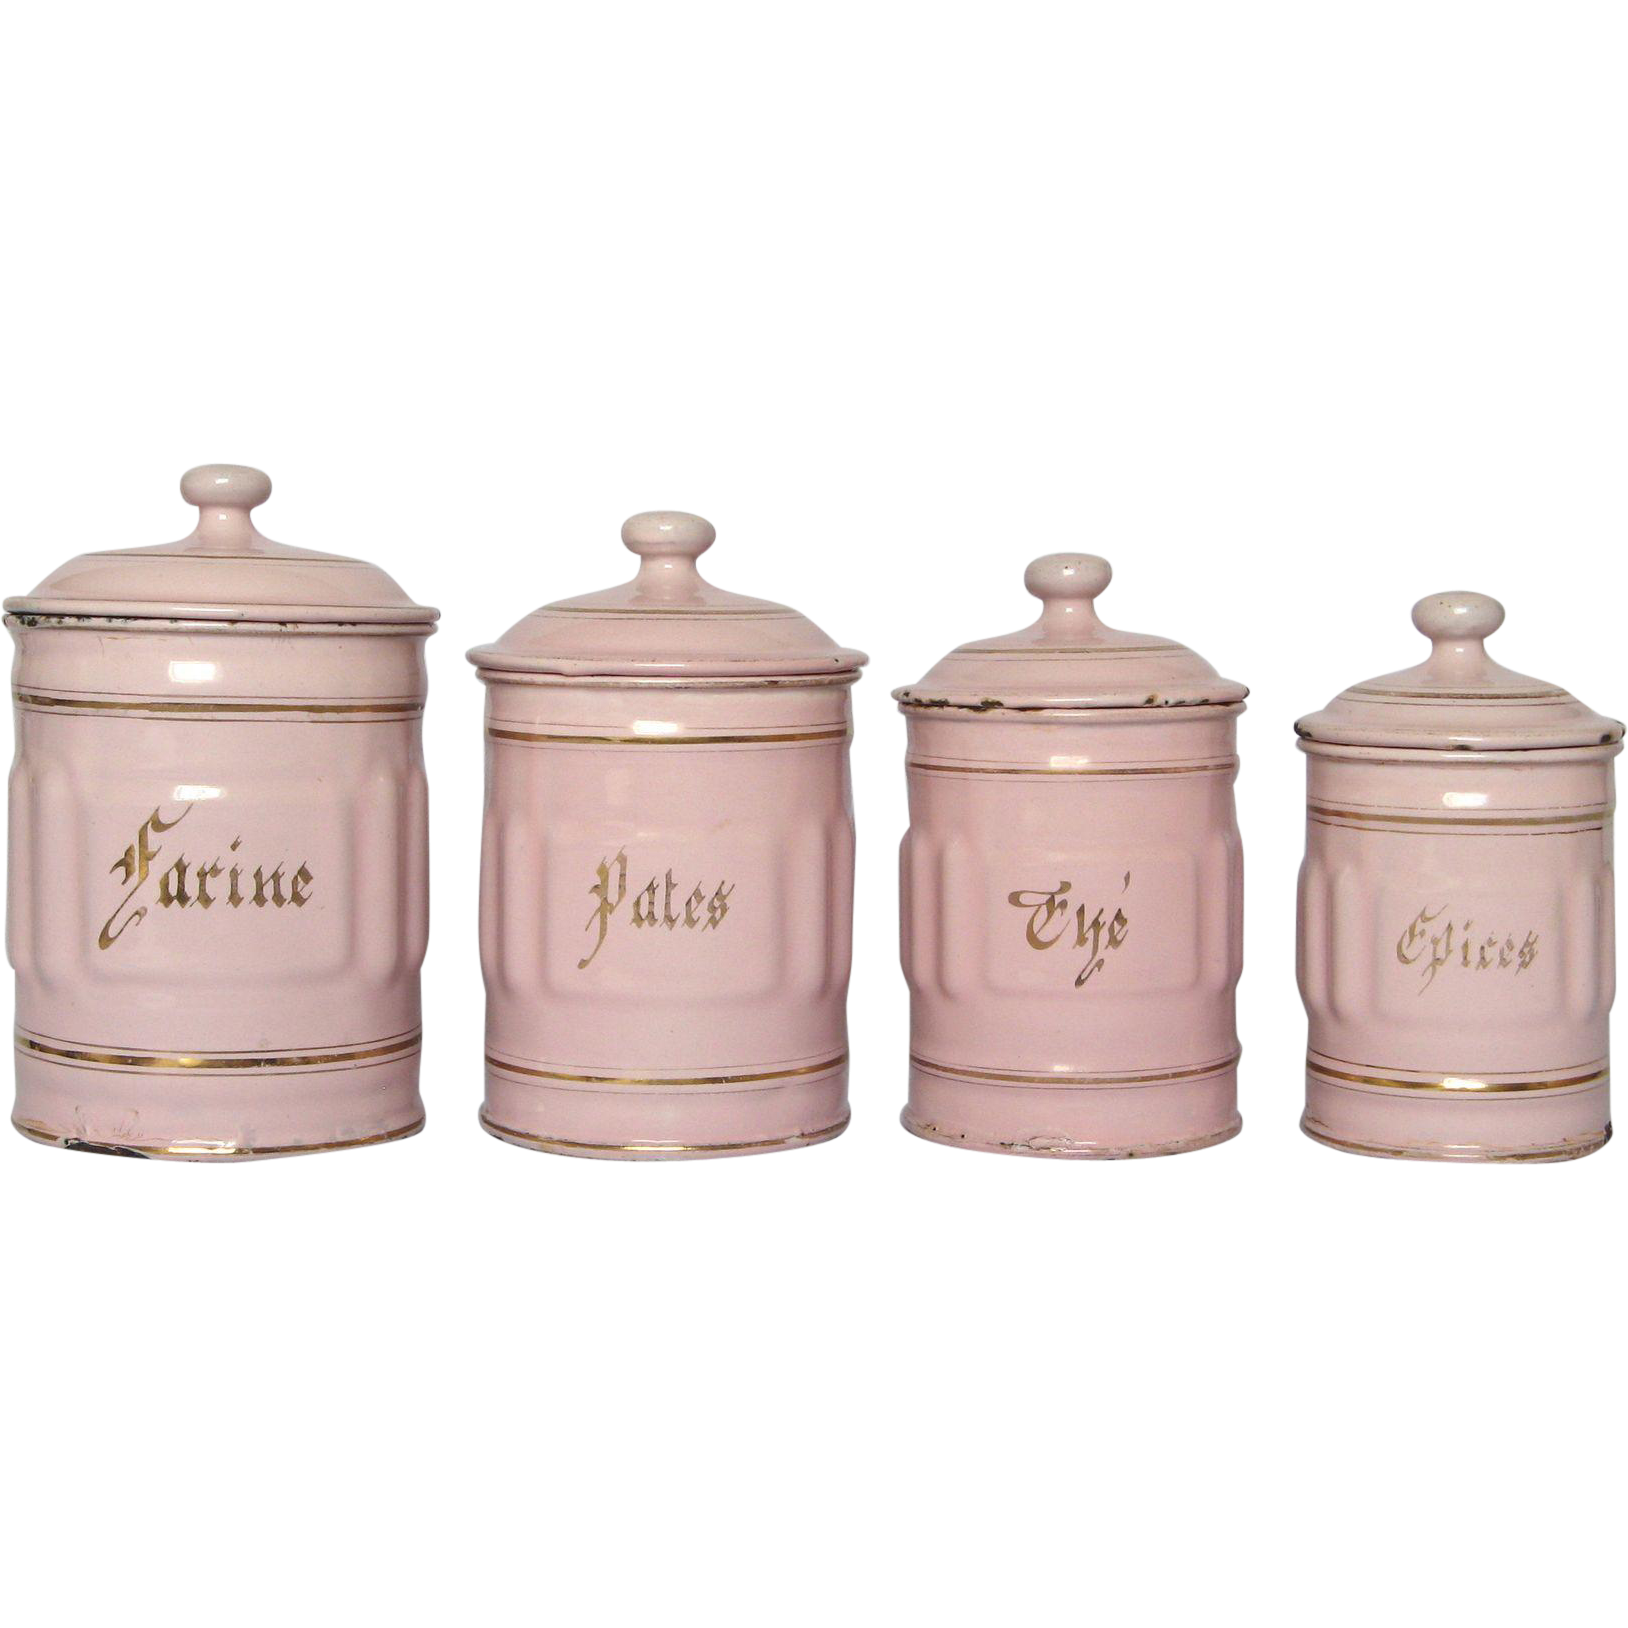 enamel kitchen canisters pink enamel french graniteware kitchen canisters from yesterdaysfrance on ruby lane 2058